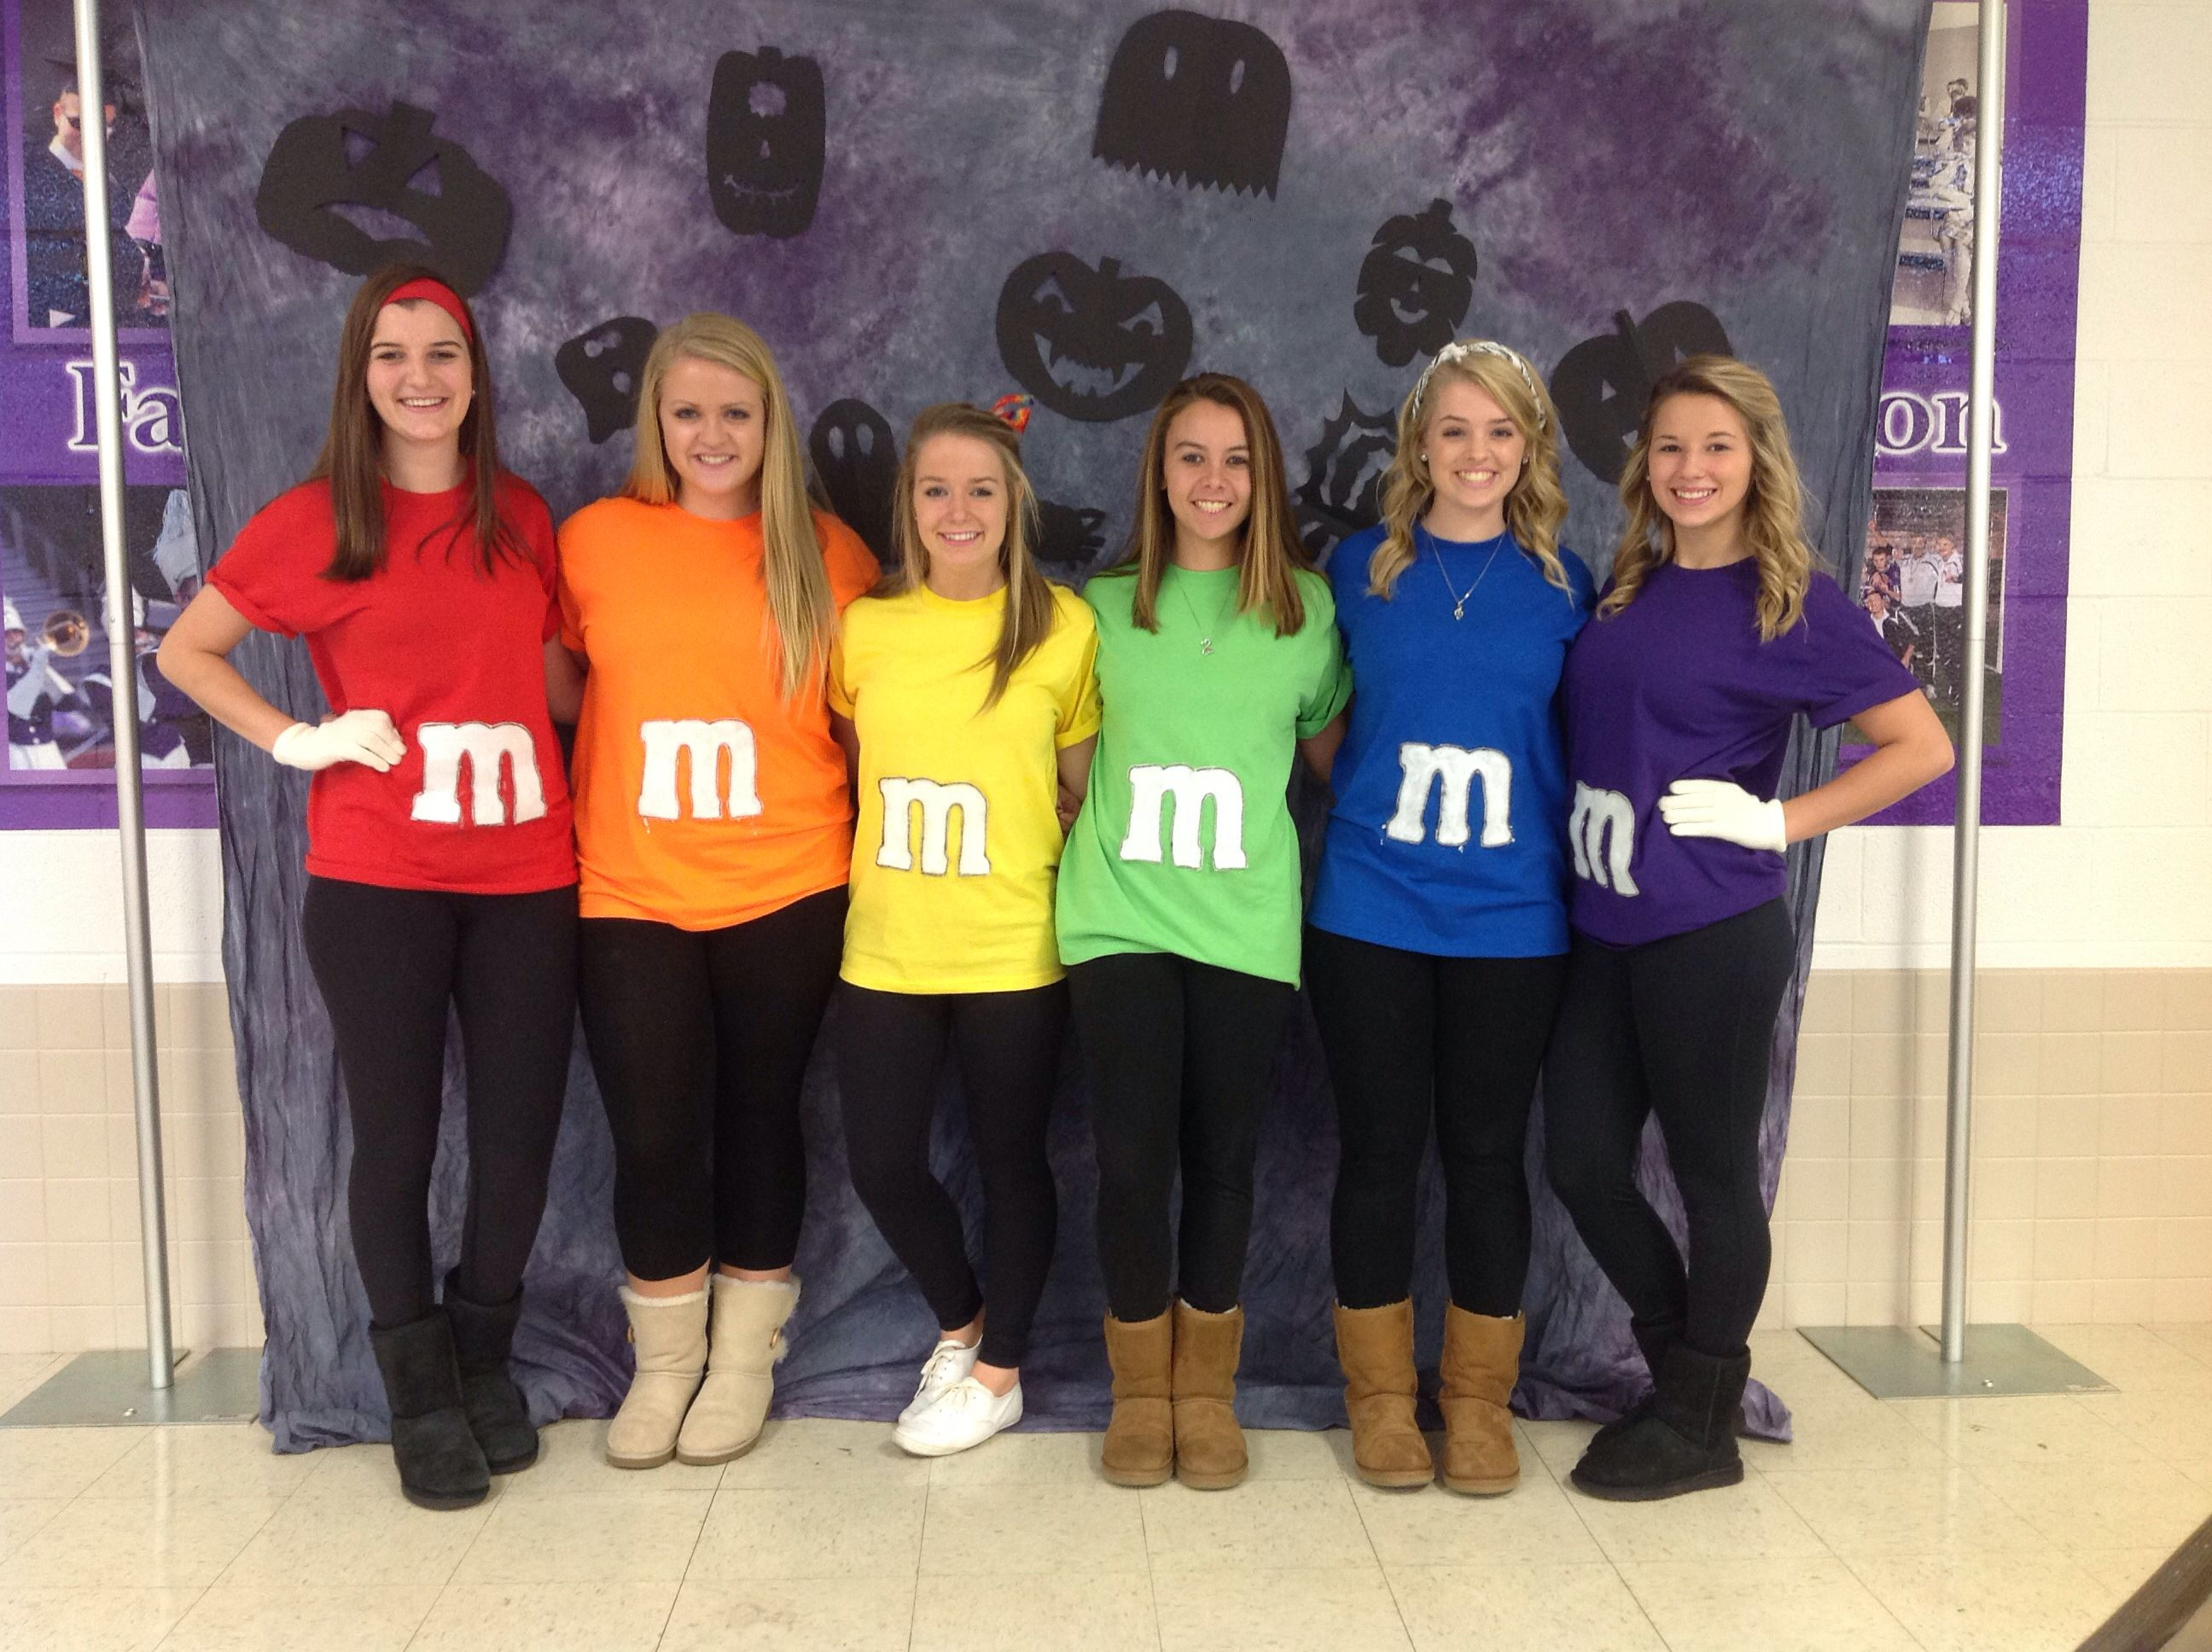 Costume Ideas For Groups - M m s for this years halloween costume diy teenhalloween costume